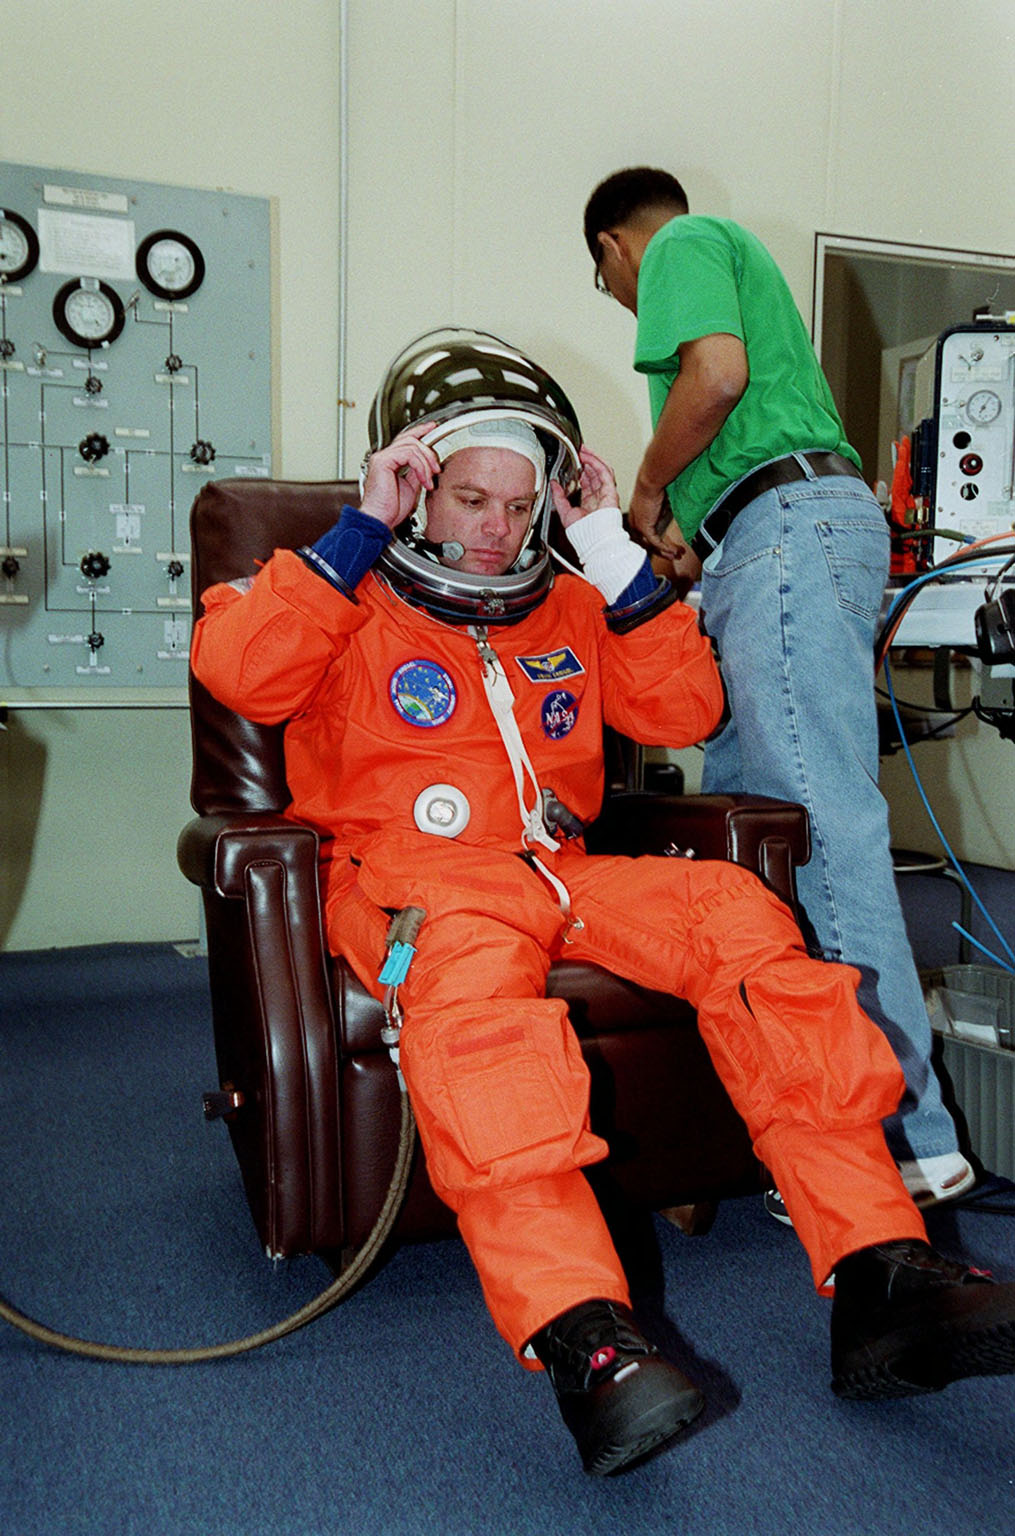 STS-99 Mission Commander Kevin Kregel suits up in the Operations and Checkout Building, as part of a flight crew equipment fit check, prior to his trip to Launch Pad 39A. The crew is taking part in Terminal Countdown Demonstration Test (TCDT) activities that provide the crew with simulated countdown exercises, emergency egress training, and opportunities to inspect the mission payloads in the orbiter's payload bay. STS-99 is the Shuttle Radar Topography Mission, which will chart a new course, using two antennae and a 200-foot-long section of space station-derived mast protruding from the payload bay to produce unrivaled 3-D images of the Earth's surface. The result of the Shuttle Radar Topography Mission could be close to 1 trillion measurements of the Earth's topography. Besides contributing to the production of better maps, these measurements could lead to improved water drainage modeling, more realistic flight simulators, better locations for cell phone towers, and enhanced navigation safety. Launch of Endeavour on the 11-day mission is scheduled for Jan. 31 at 12:47 p.m. EST